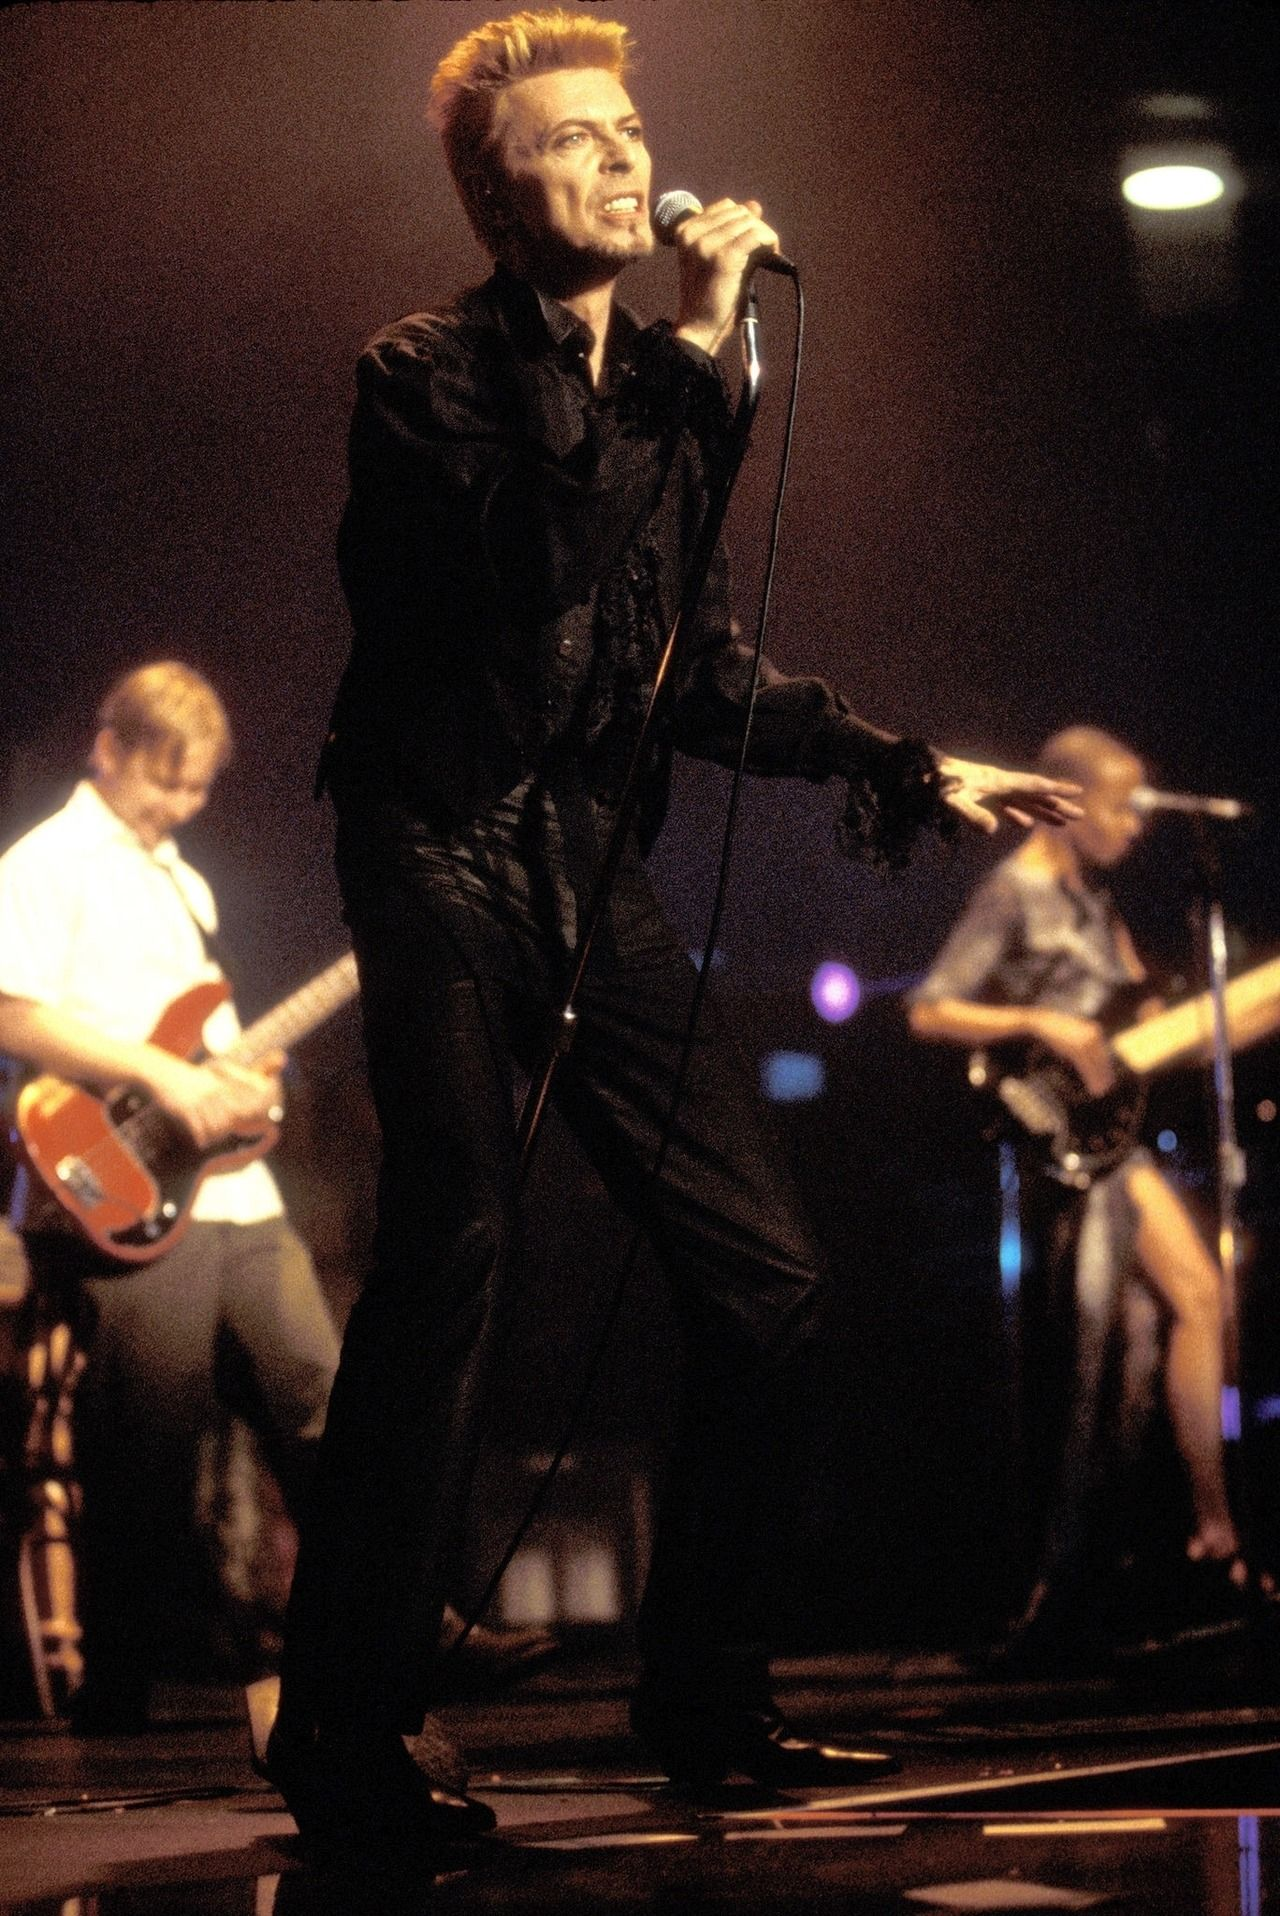 rides the mic stand away like a horse David bowie